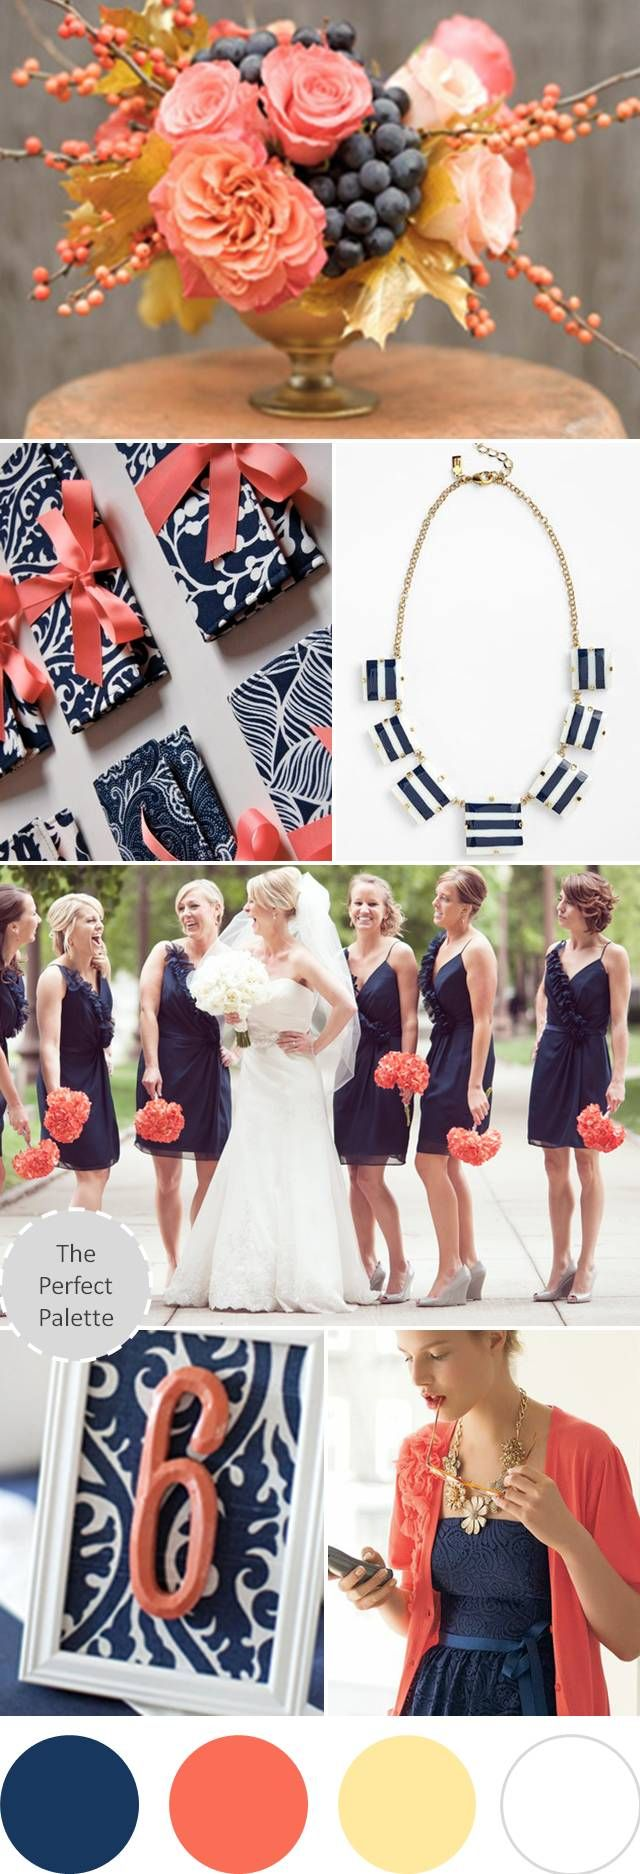 {Wedding Colors I love}: Navy Blue, Coral + Antique Gold! http://www.theperfectpalette.com/2013/03/colors-i-love-navy-blue-coral-antique.html